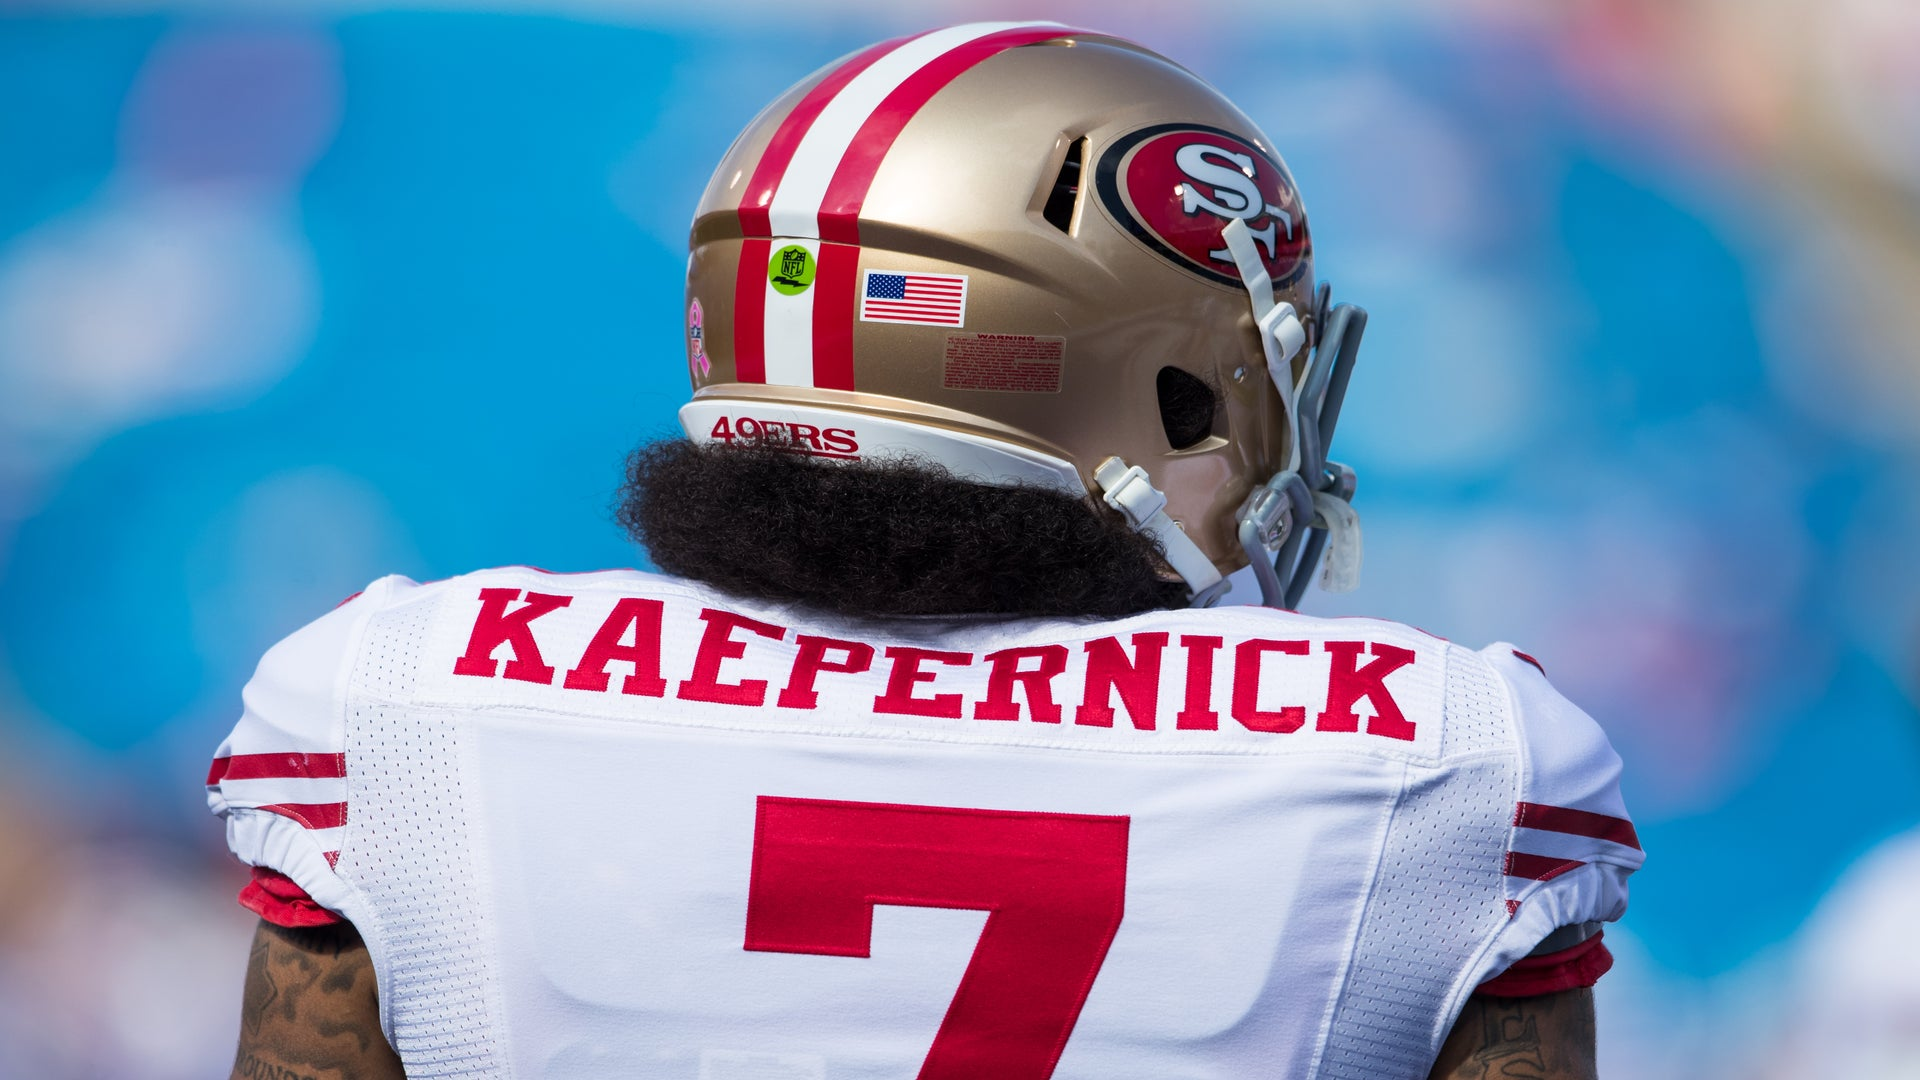 Colin Kaepernick's Jersey Displayed at the MoMA as Symbol of Social Justice Activism